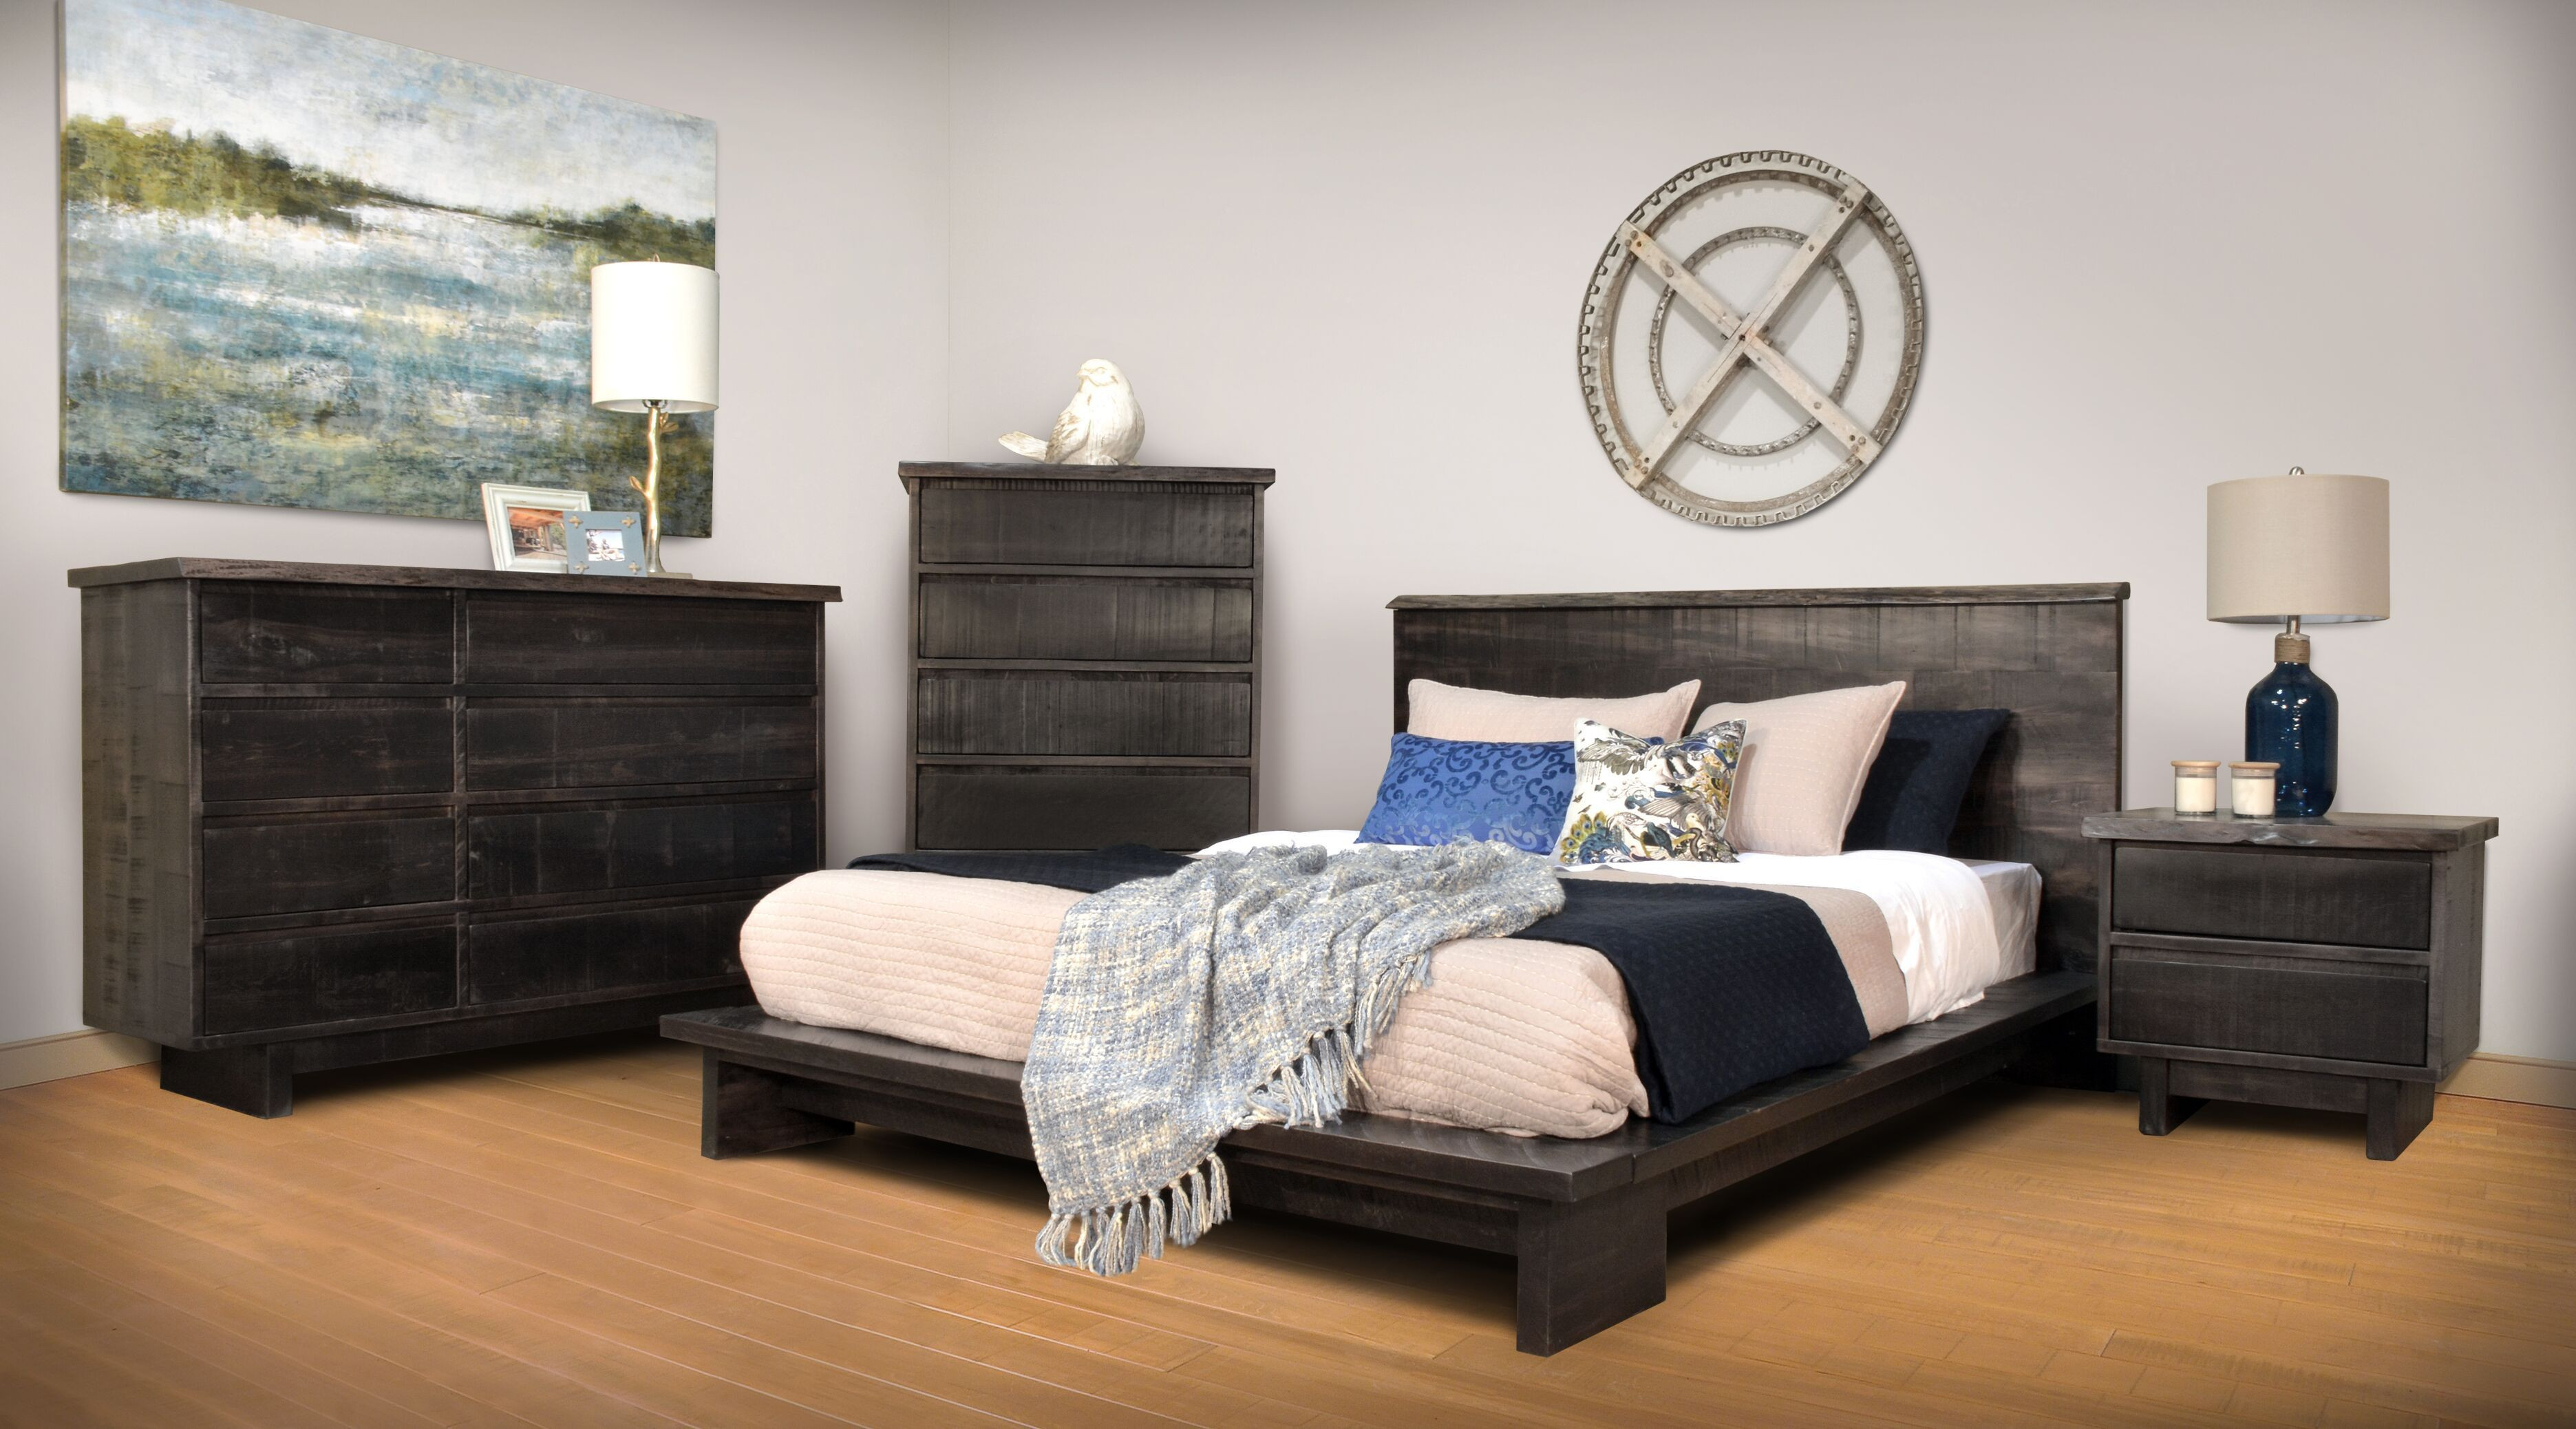 Ruff Sawn Modelli Bedroom Furniture Collection